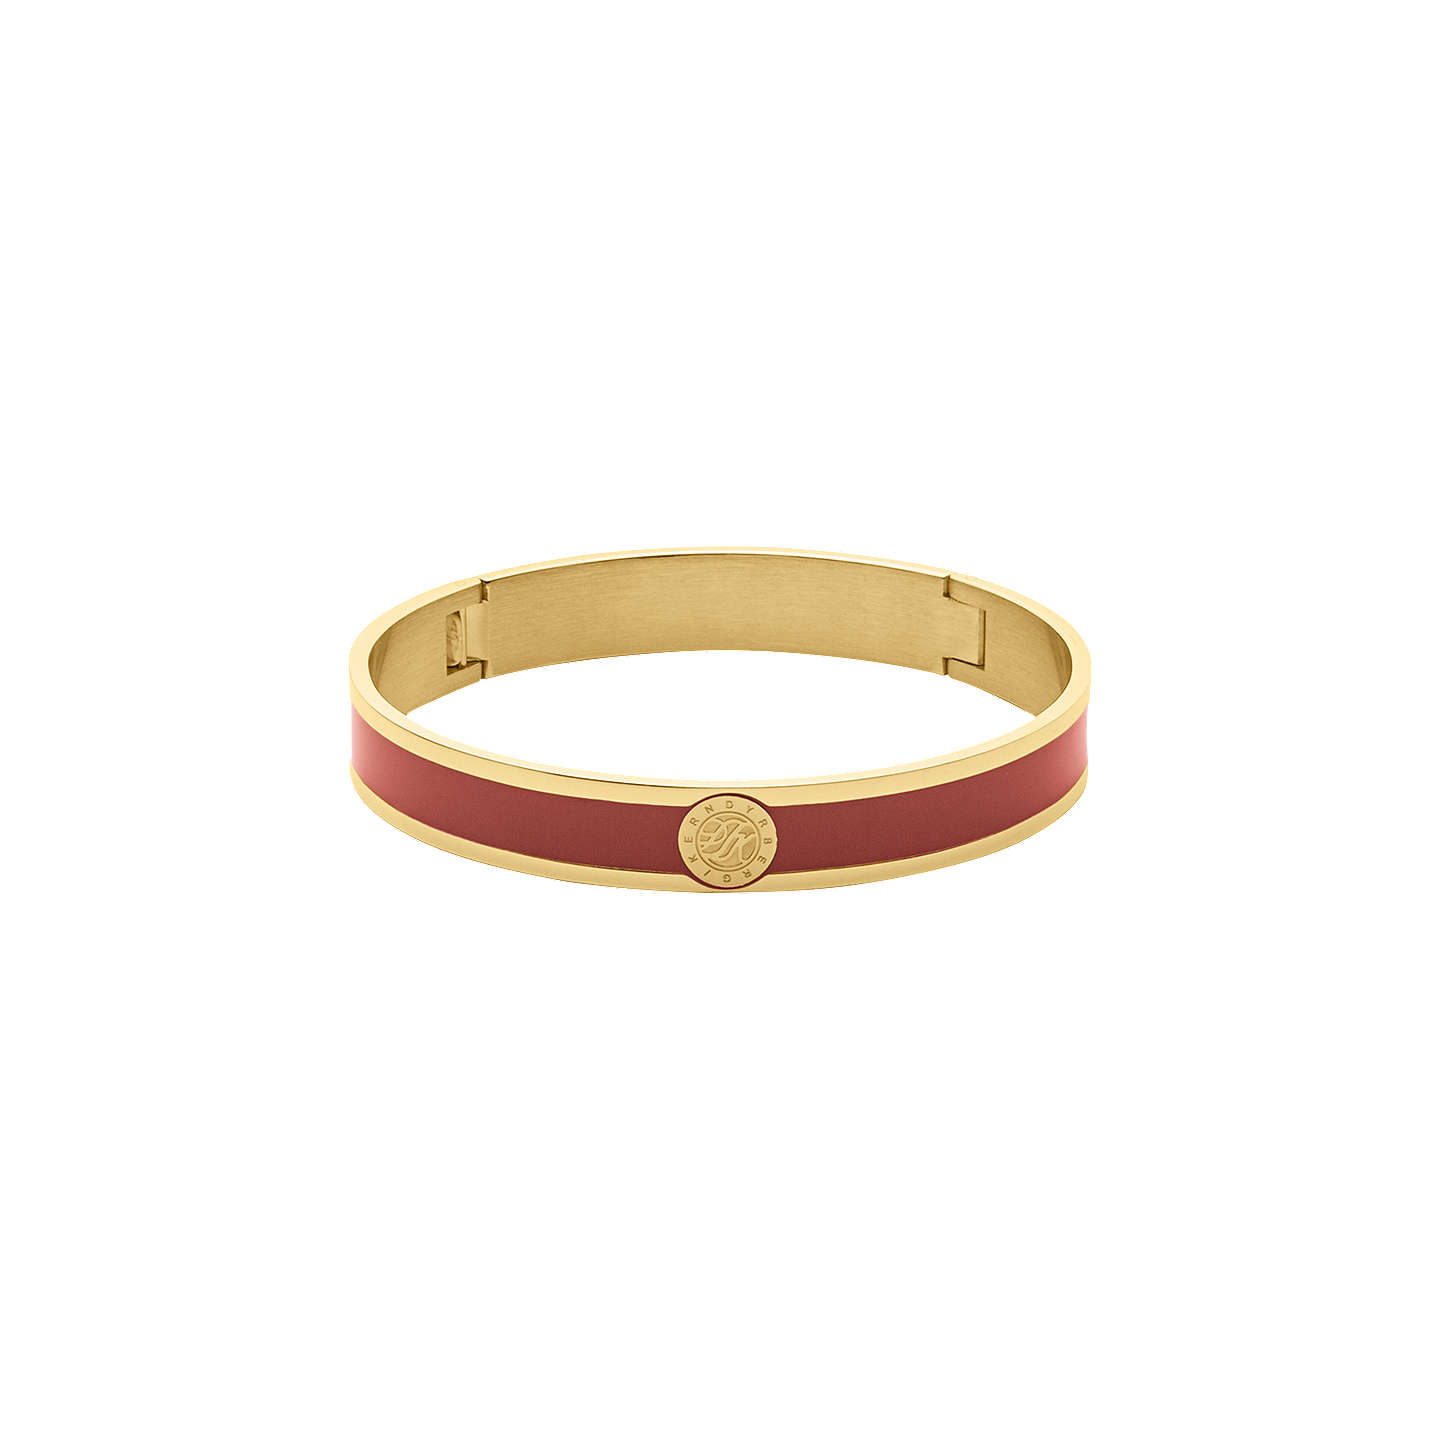 BuyDYRBERG/KERN Enamel Monogram Bangle, Gold/Red Online at johnlewis.com